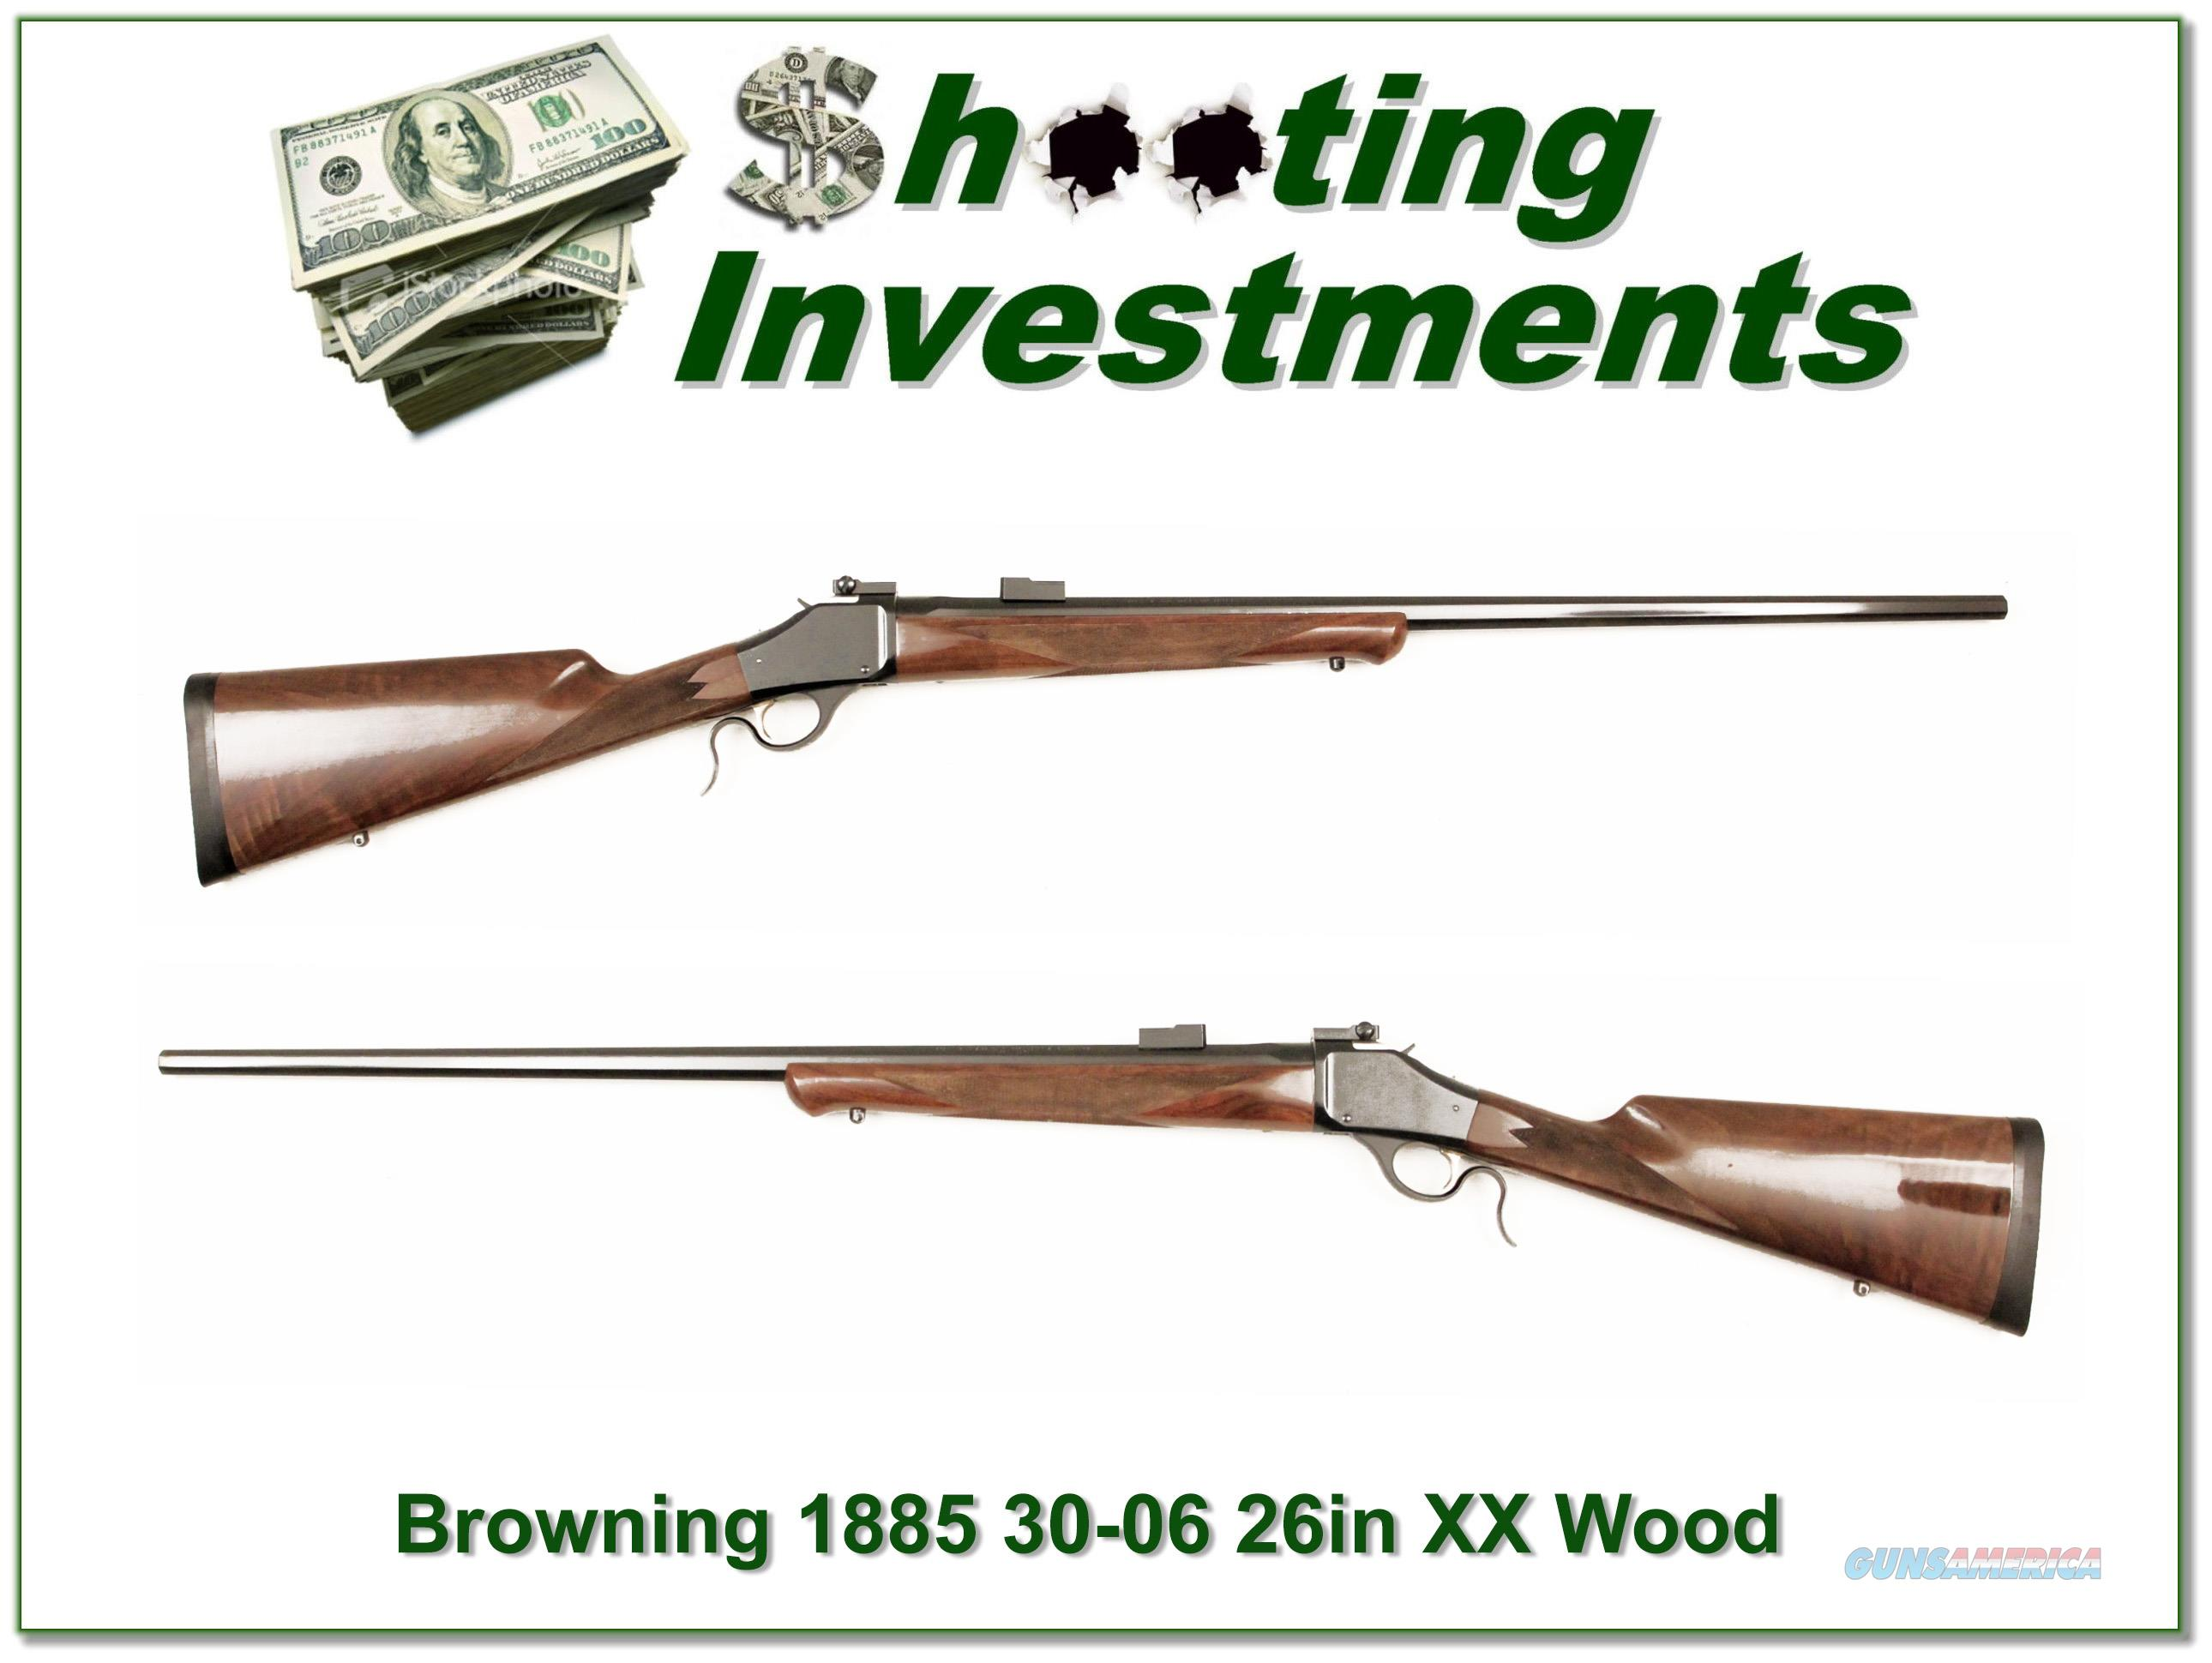 Browning 1885 30-06 28in Octagonal barrel XX Wood!  Guns > Rifles > Browning Rifles > Singe Shot